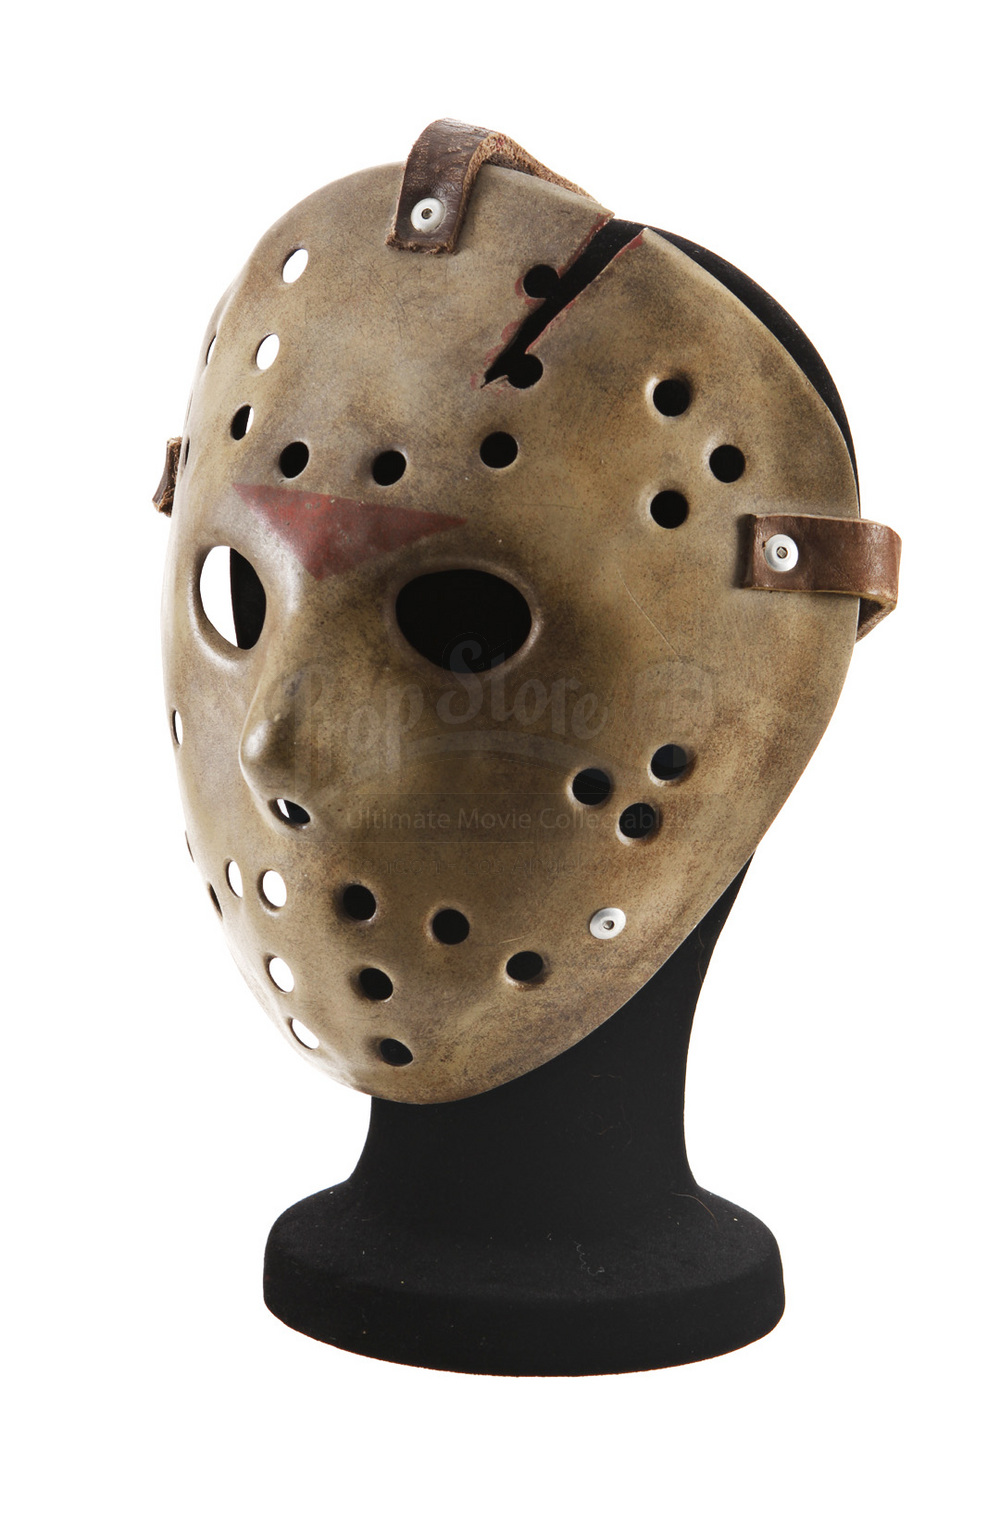 Mold As The Hero Masks And Given Away A Promotional Piece Is Very Valuable What Would You Pay For Historical Item Like This From Friday 13th